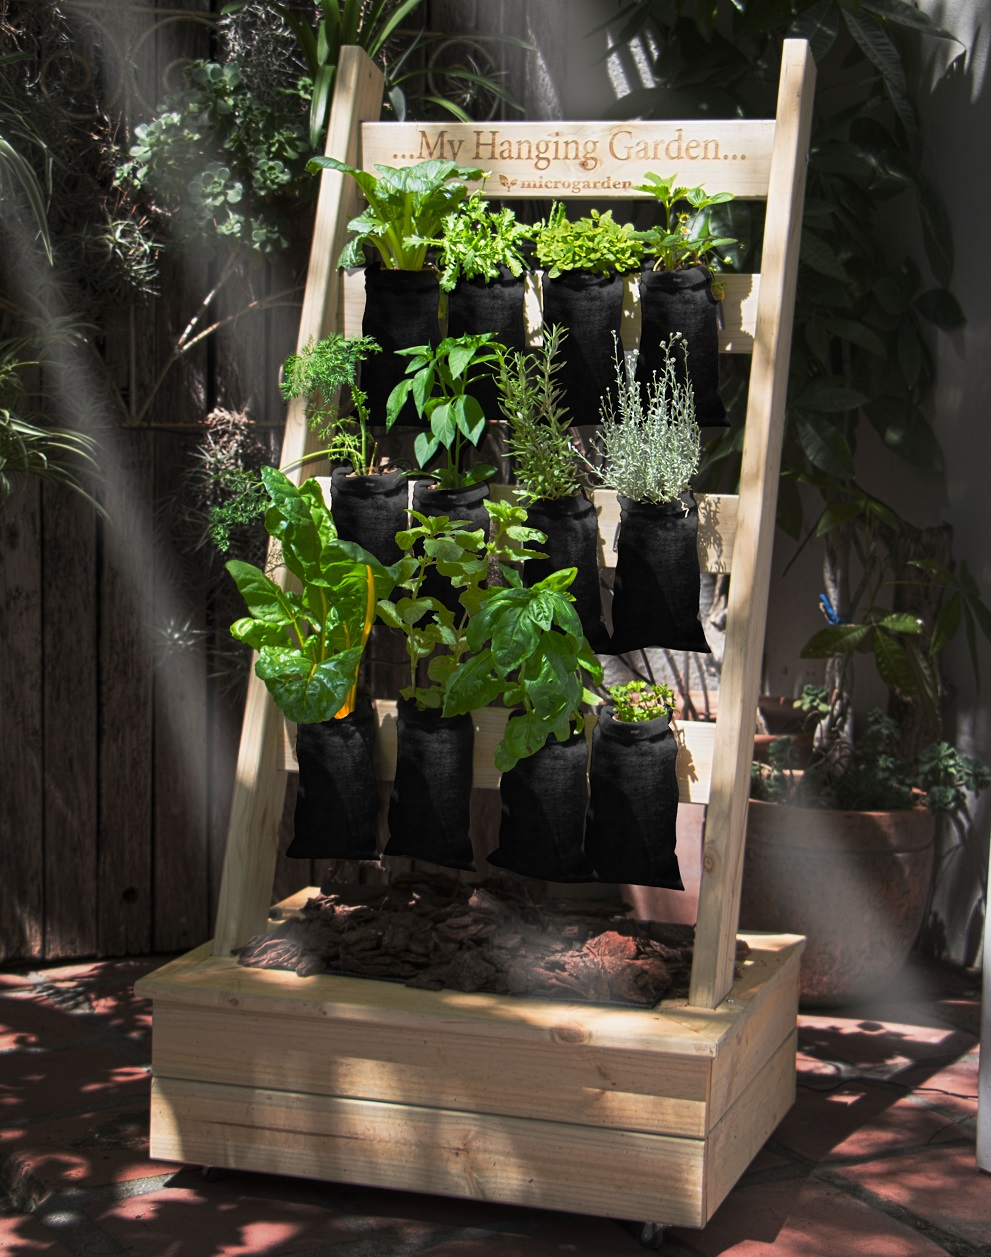 My Hanging Garden Vertical Hydroponic System Online